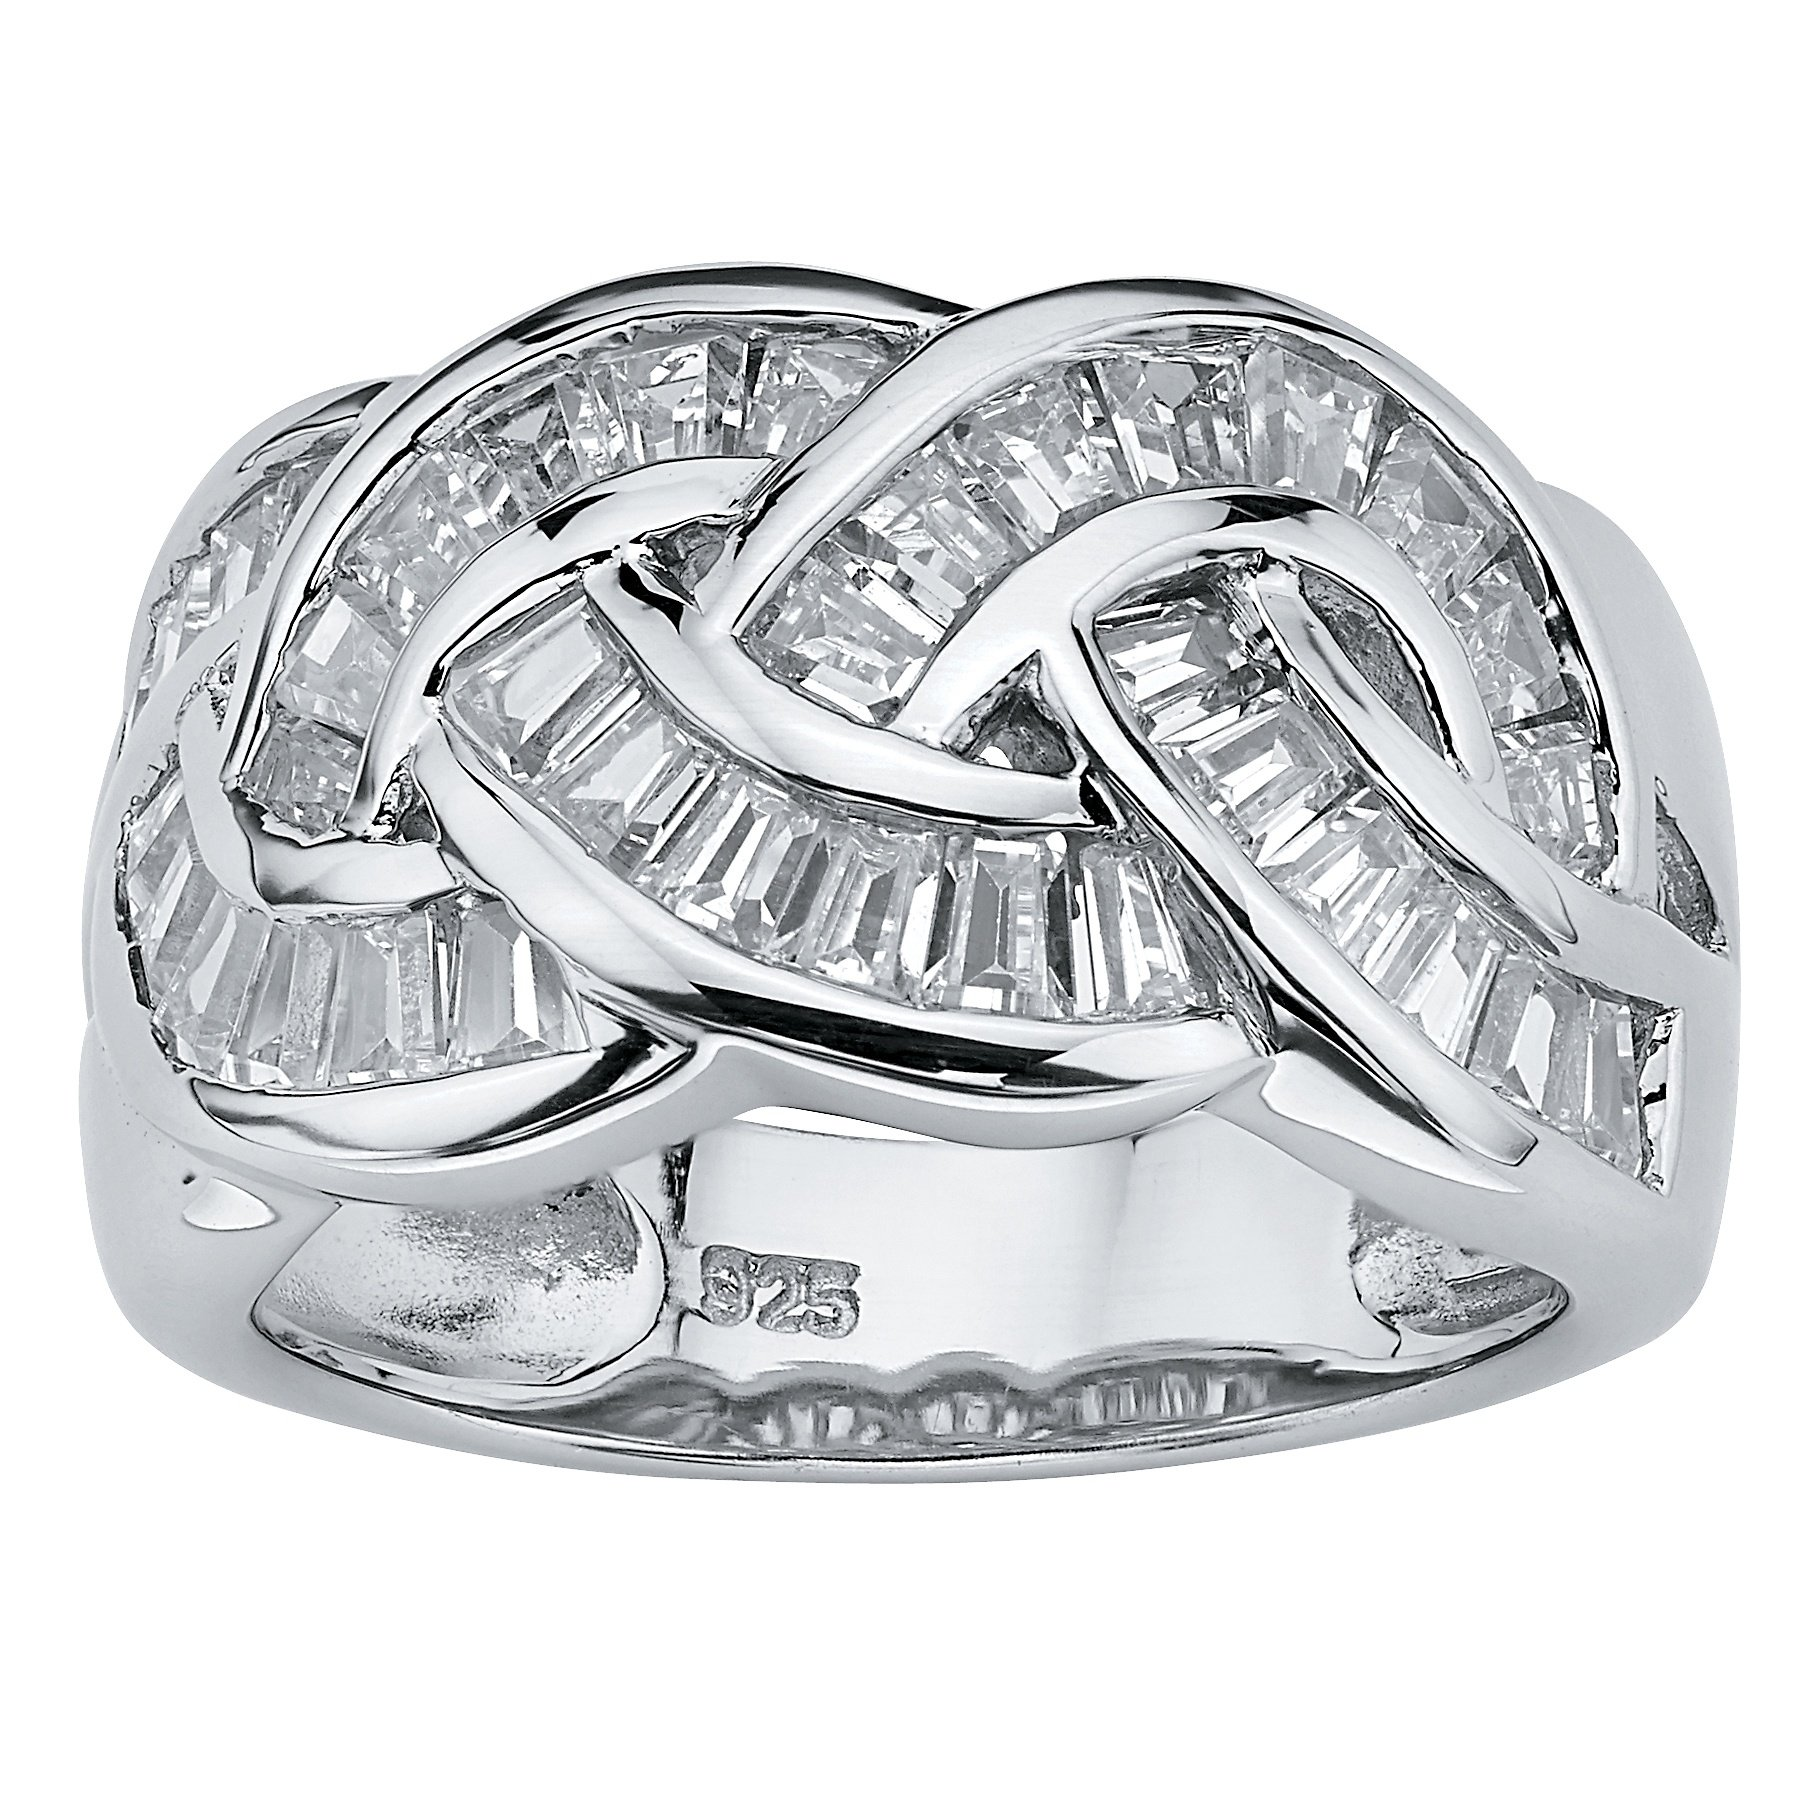 Baguette-Cut White Cubic Zirconia Platinum over .925 Sterling Silver Channel Crossover Ring Size 7 by Palm Beach Jewelry